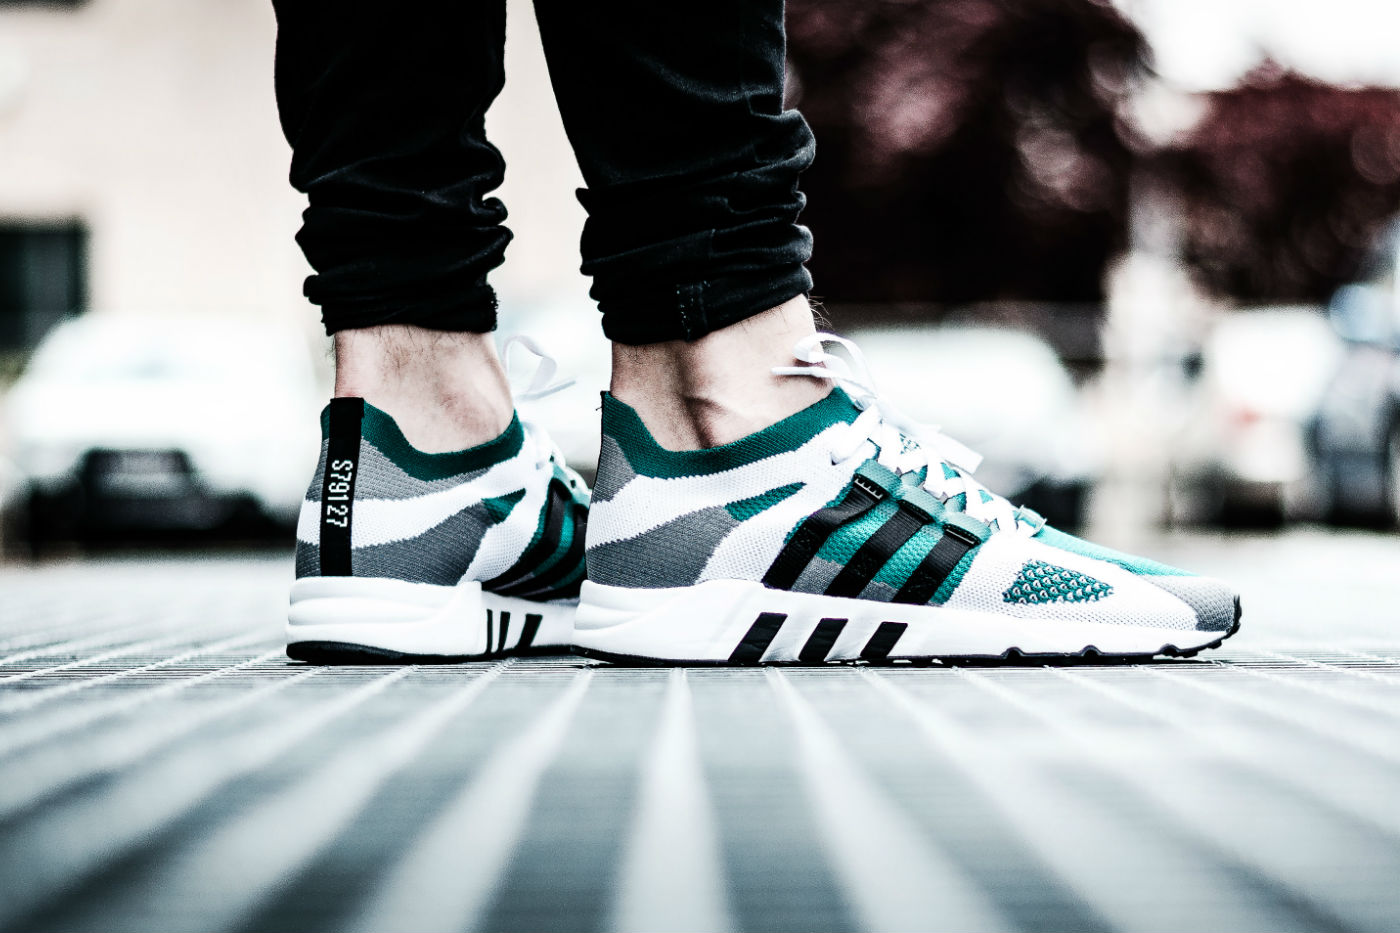 adidas eqt running support primeknit core black/Sub green